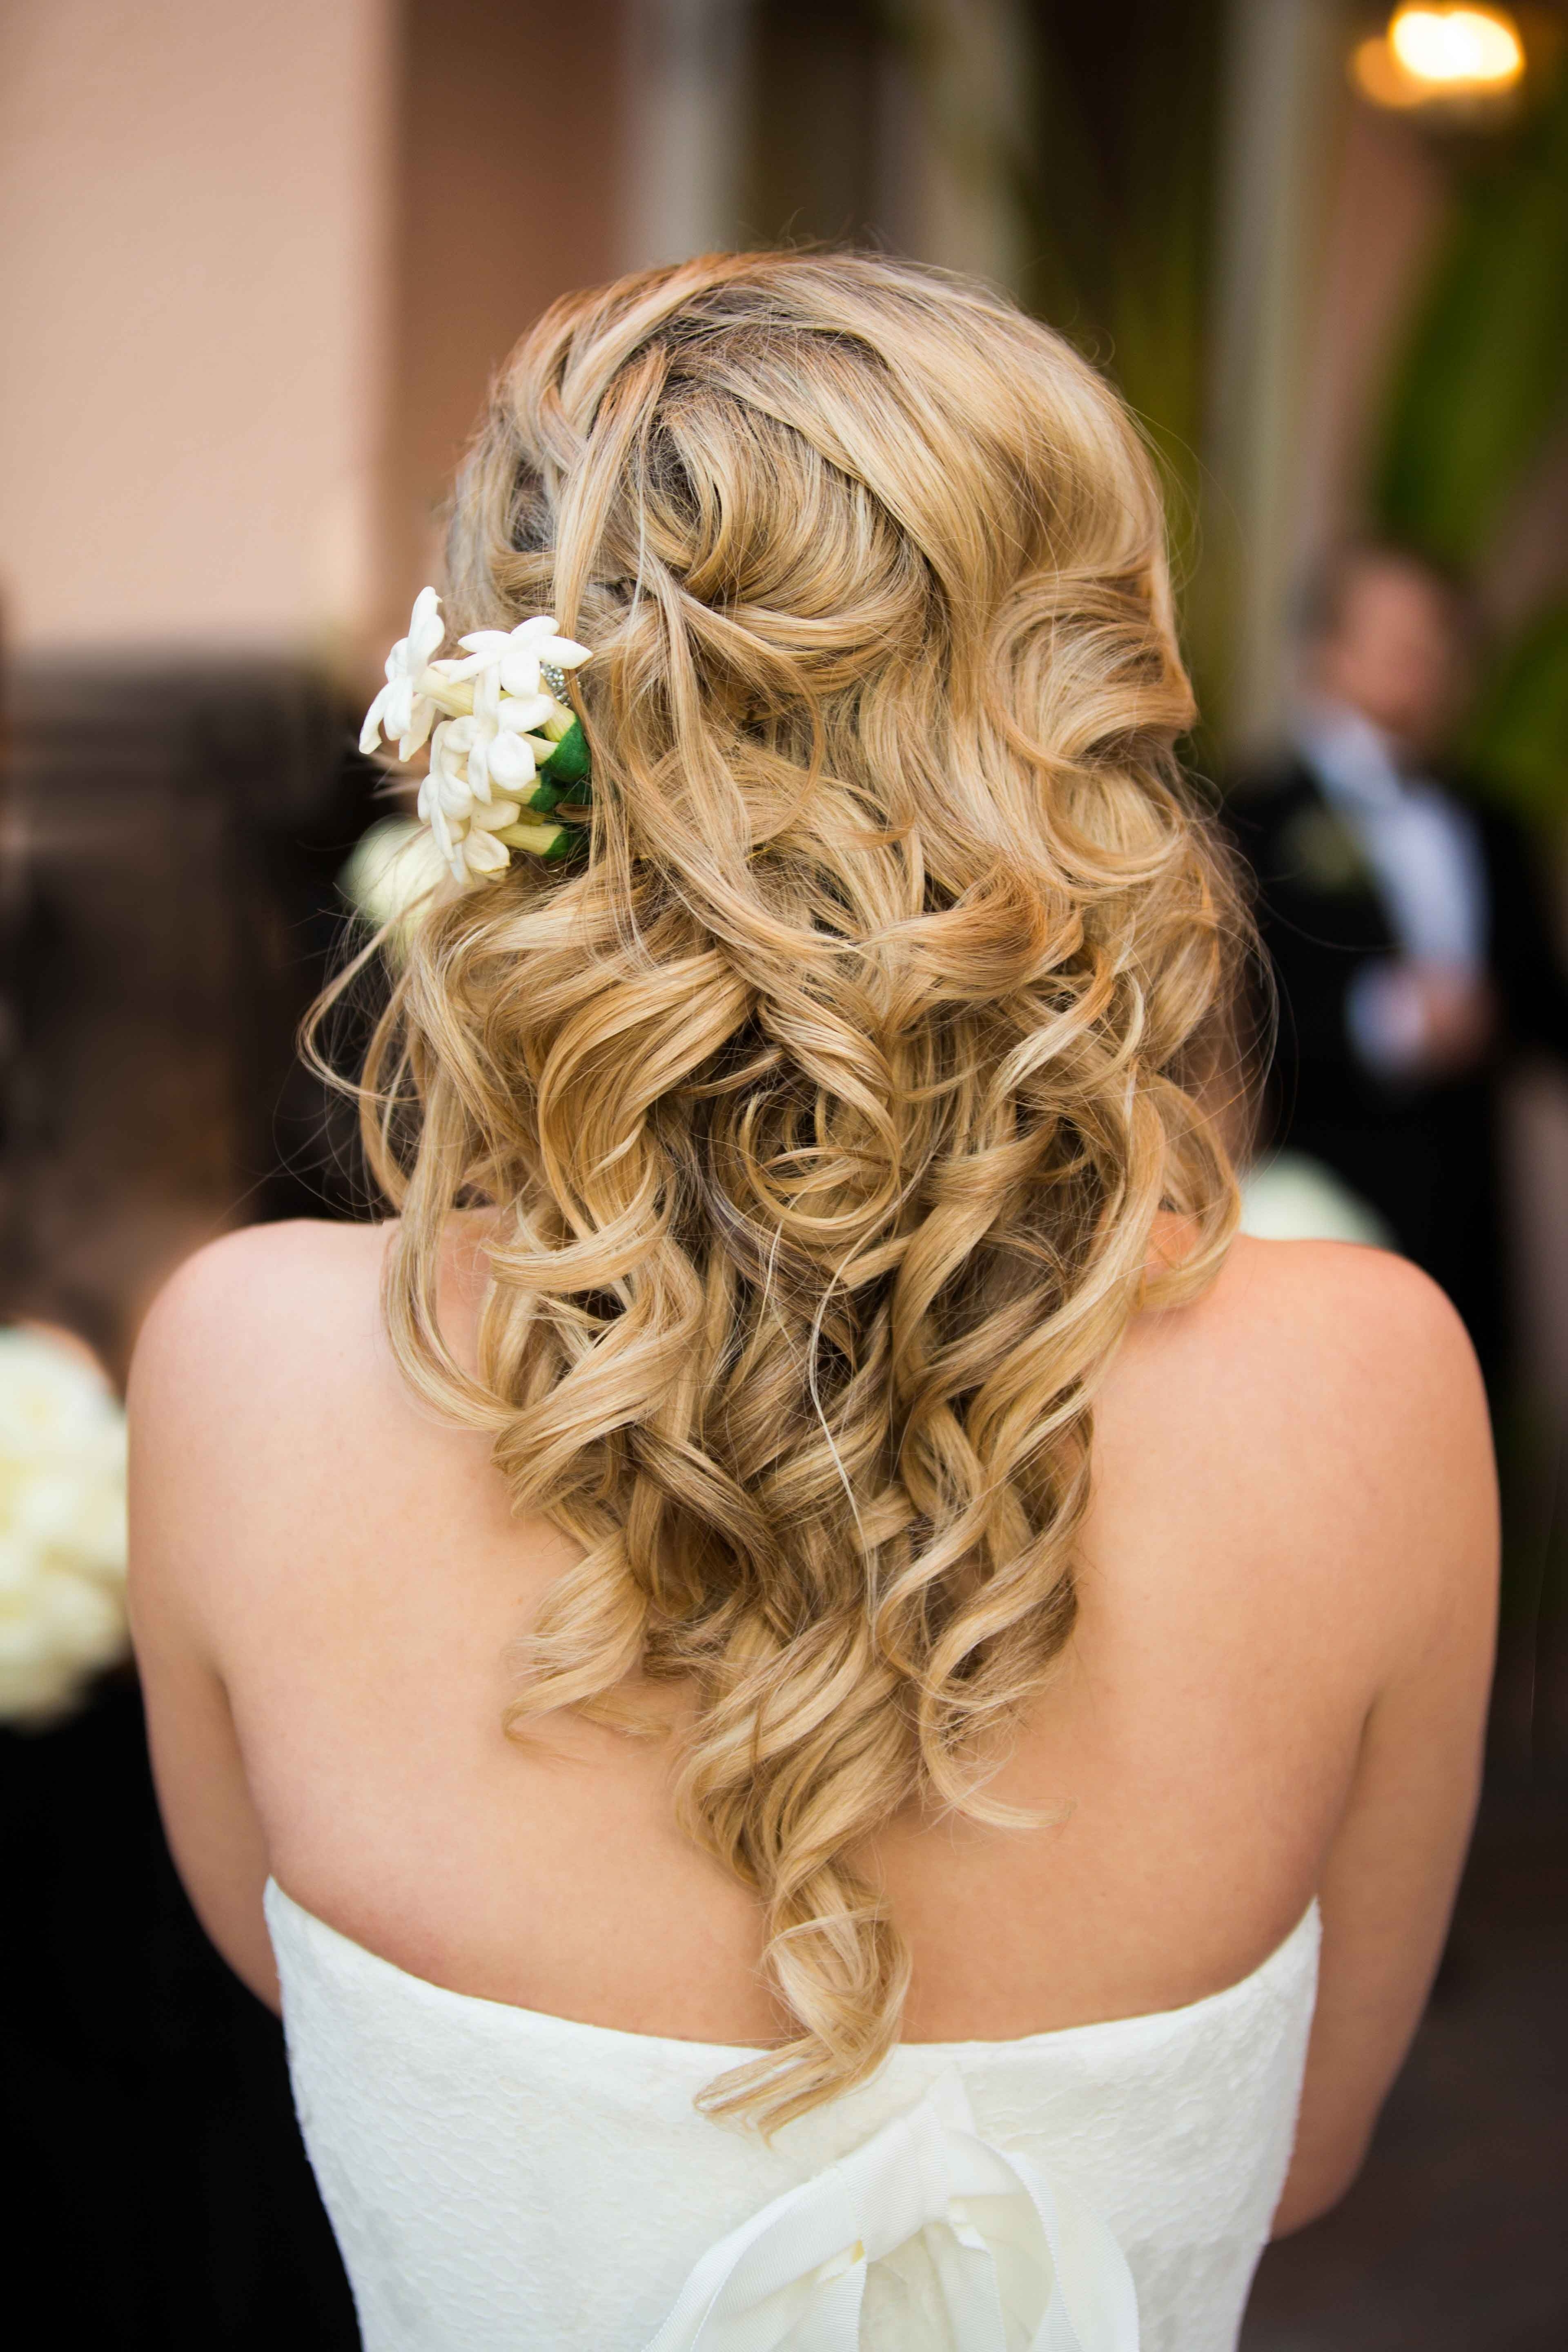 Well Known White Wedding Blonde Hairstyles Regarding 5 Easy Hairstyles For The Ladies Of The Wedding Party – Inside Weddings (View 13 of 20)